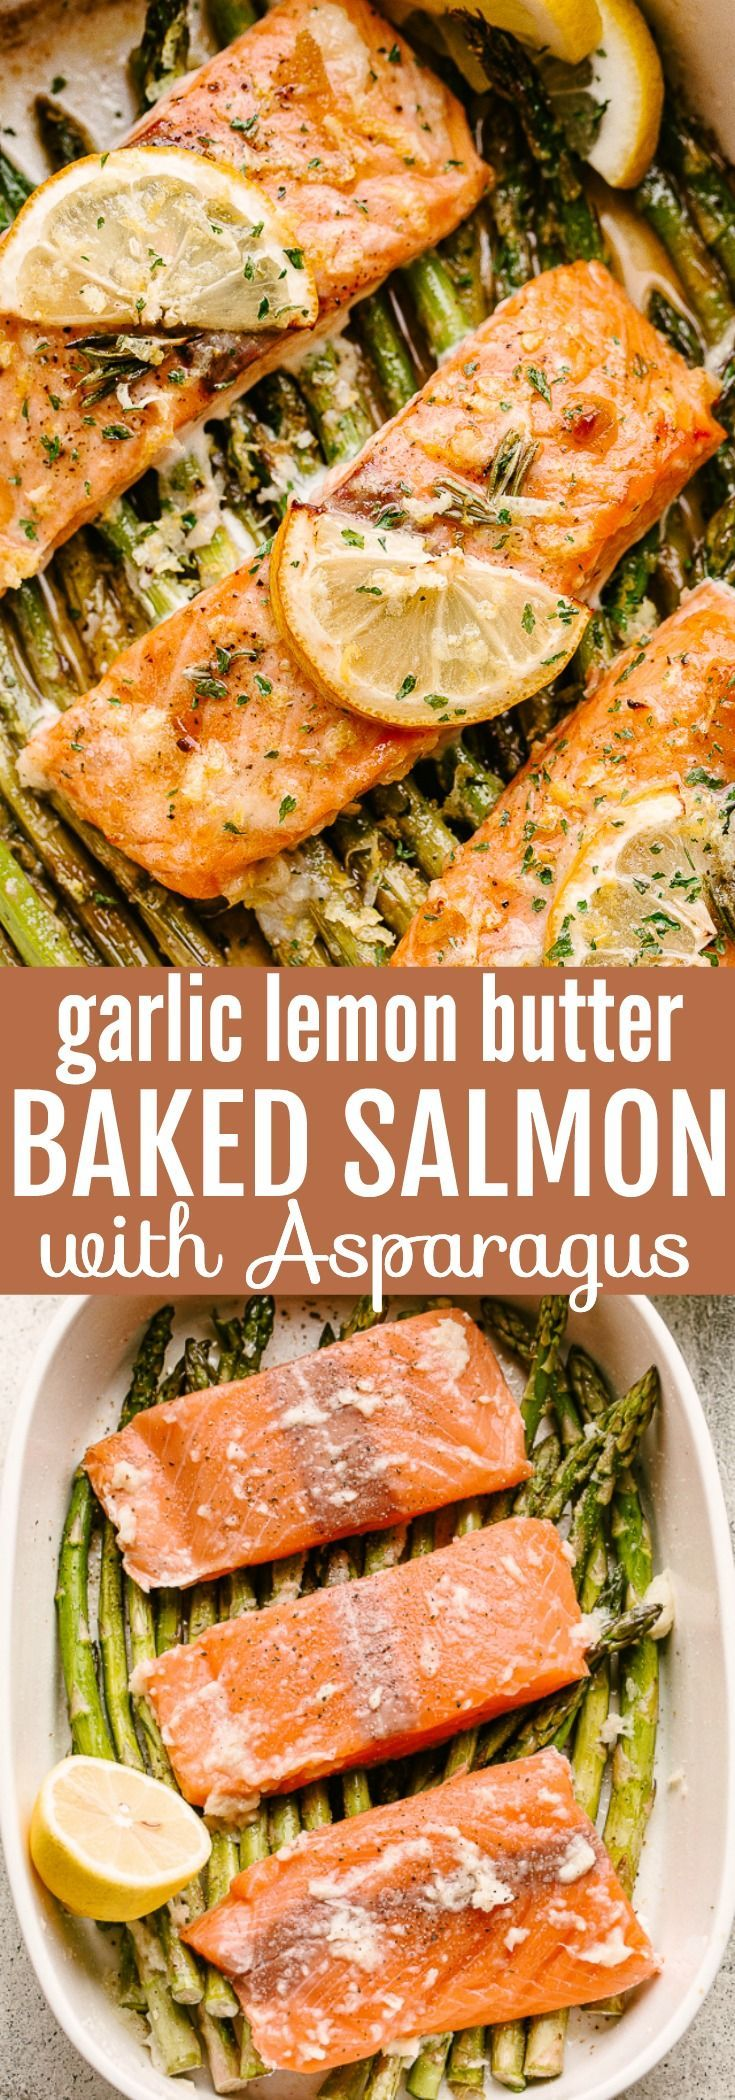 Oven Baked Salmon and Asparagus with Garlic Lemon Butter Sauce - With the best f...   - RECIPES: Se